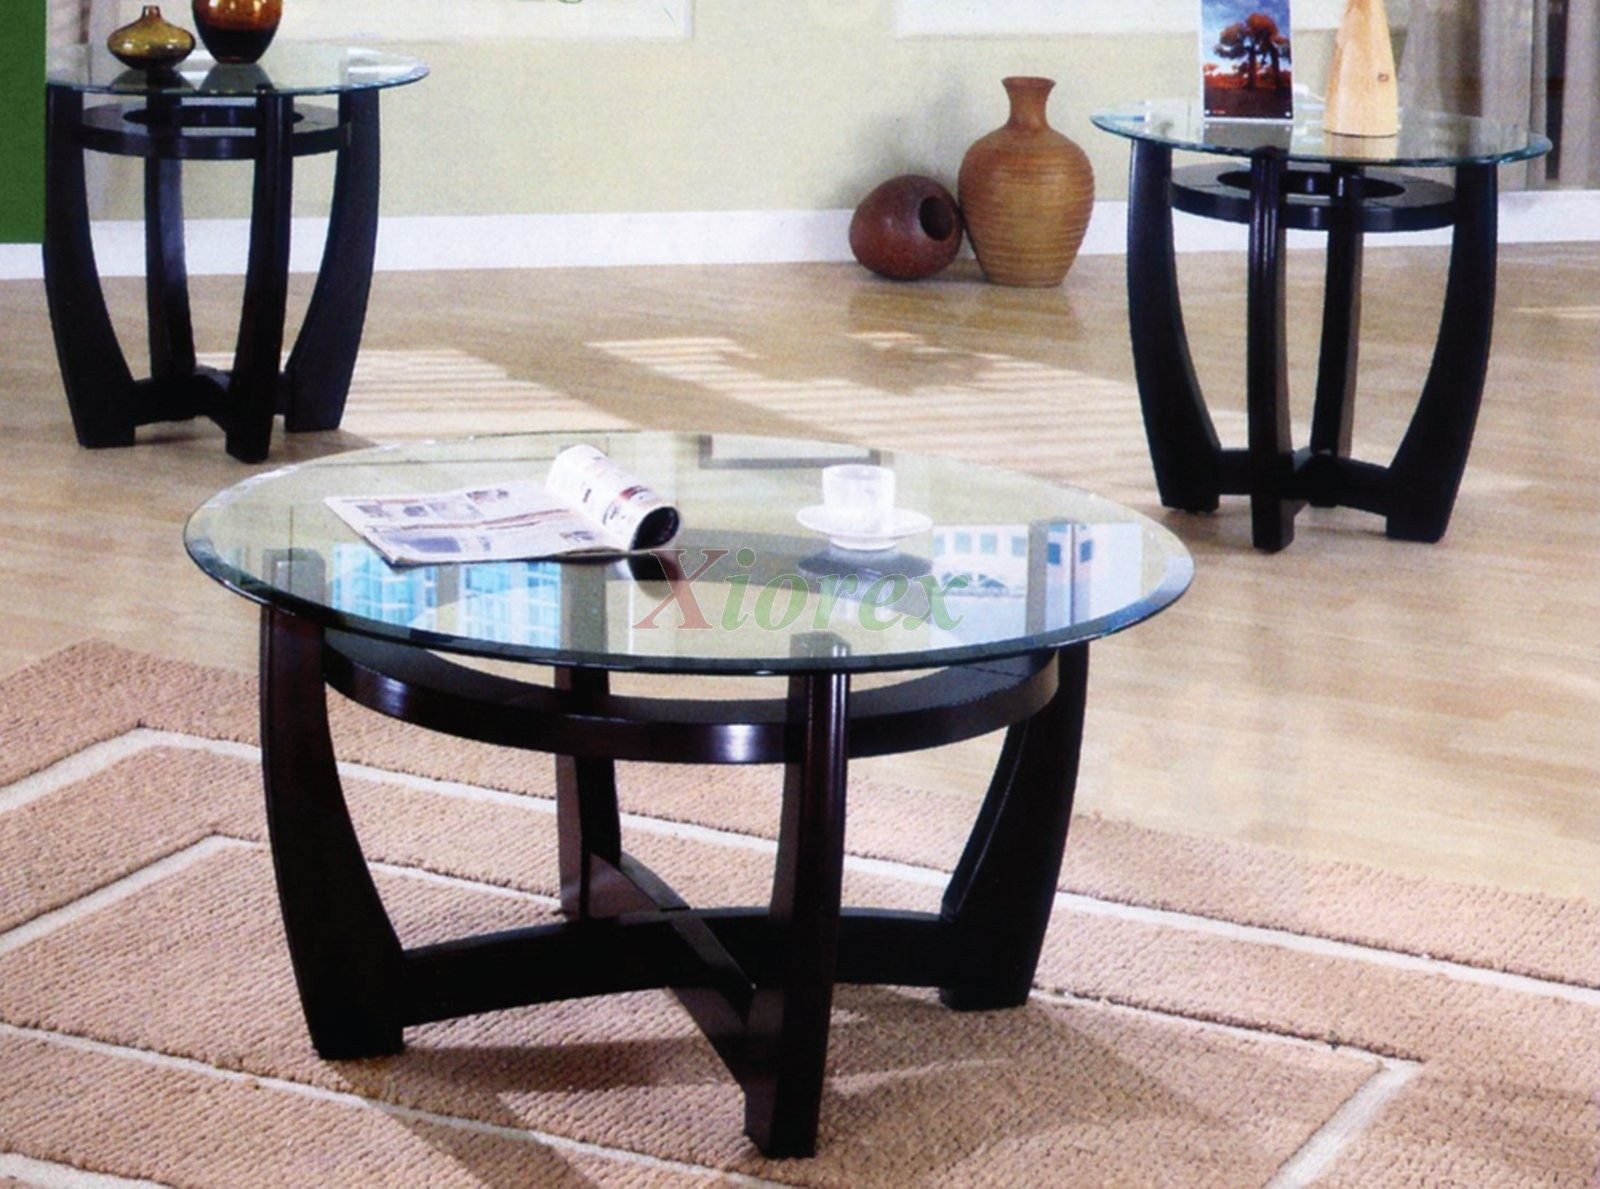 Tables Of The Ursa 3 Piece Living Room Table Set Are Made From Poplar Wood  And Feature Crisscross Shape Legs And Glass Tops With Nice Bevels.